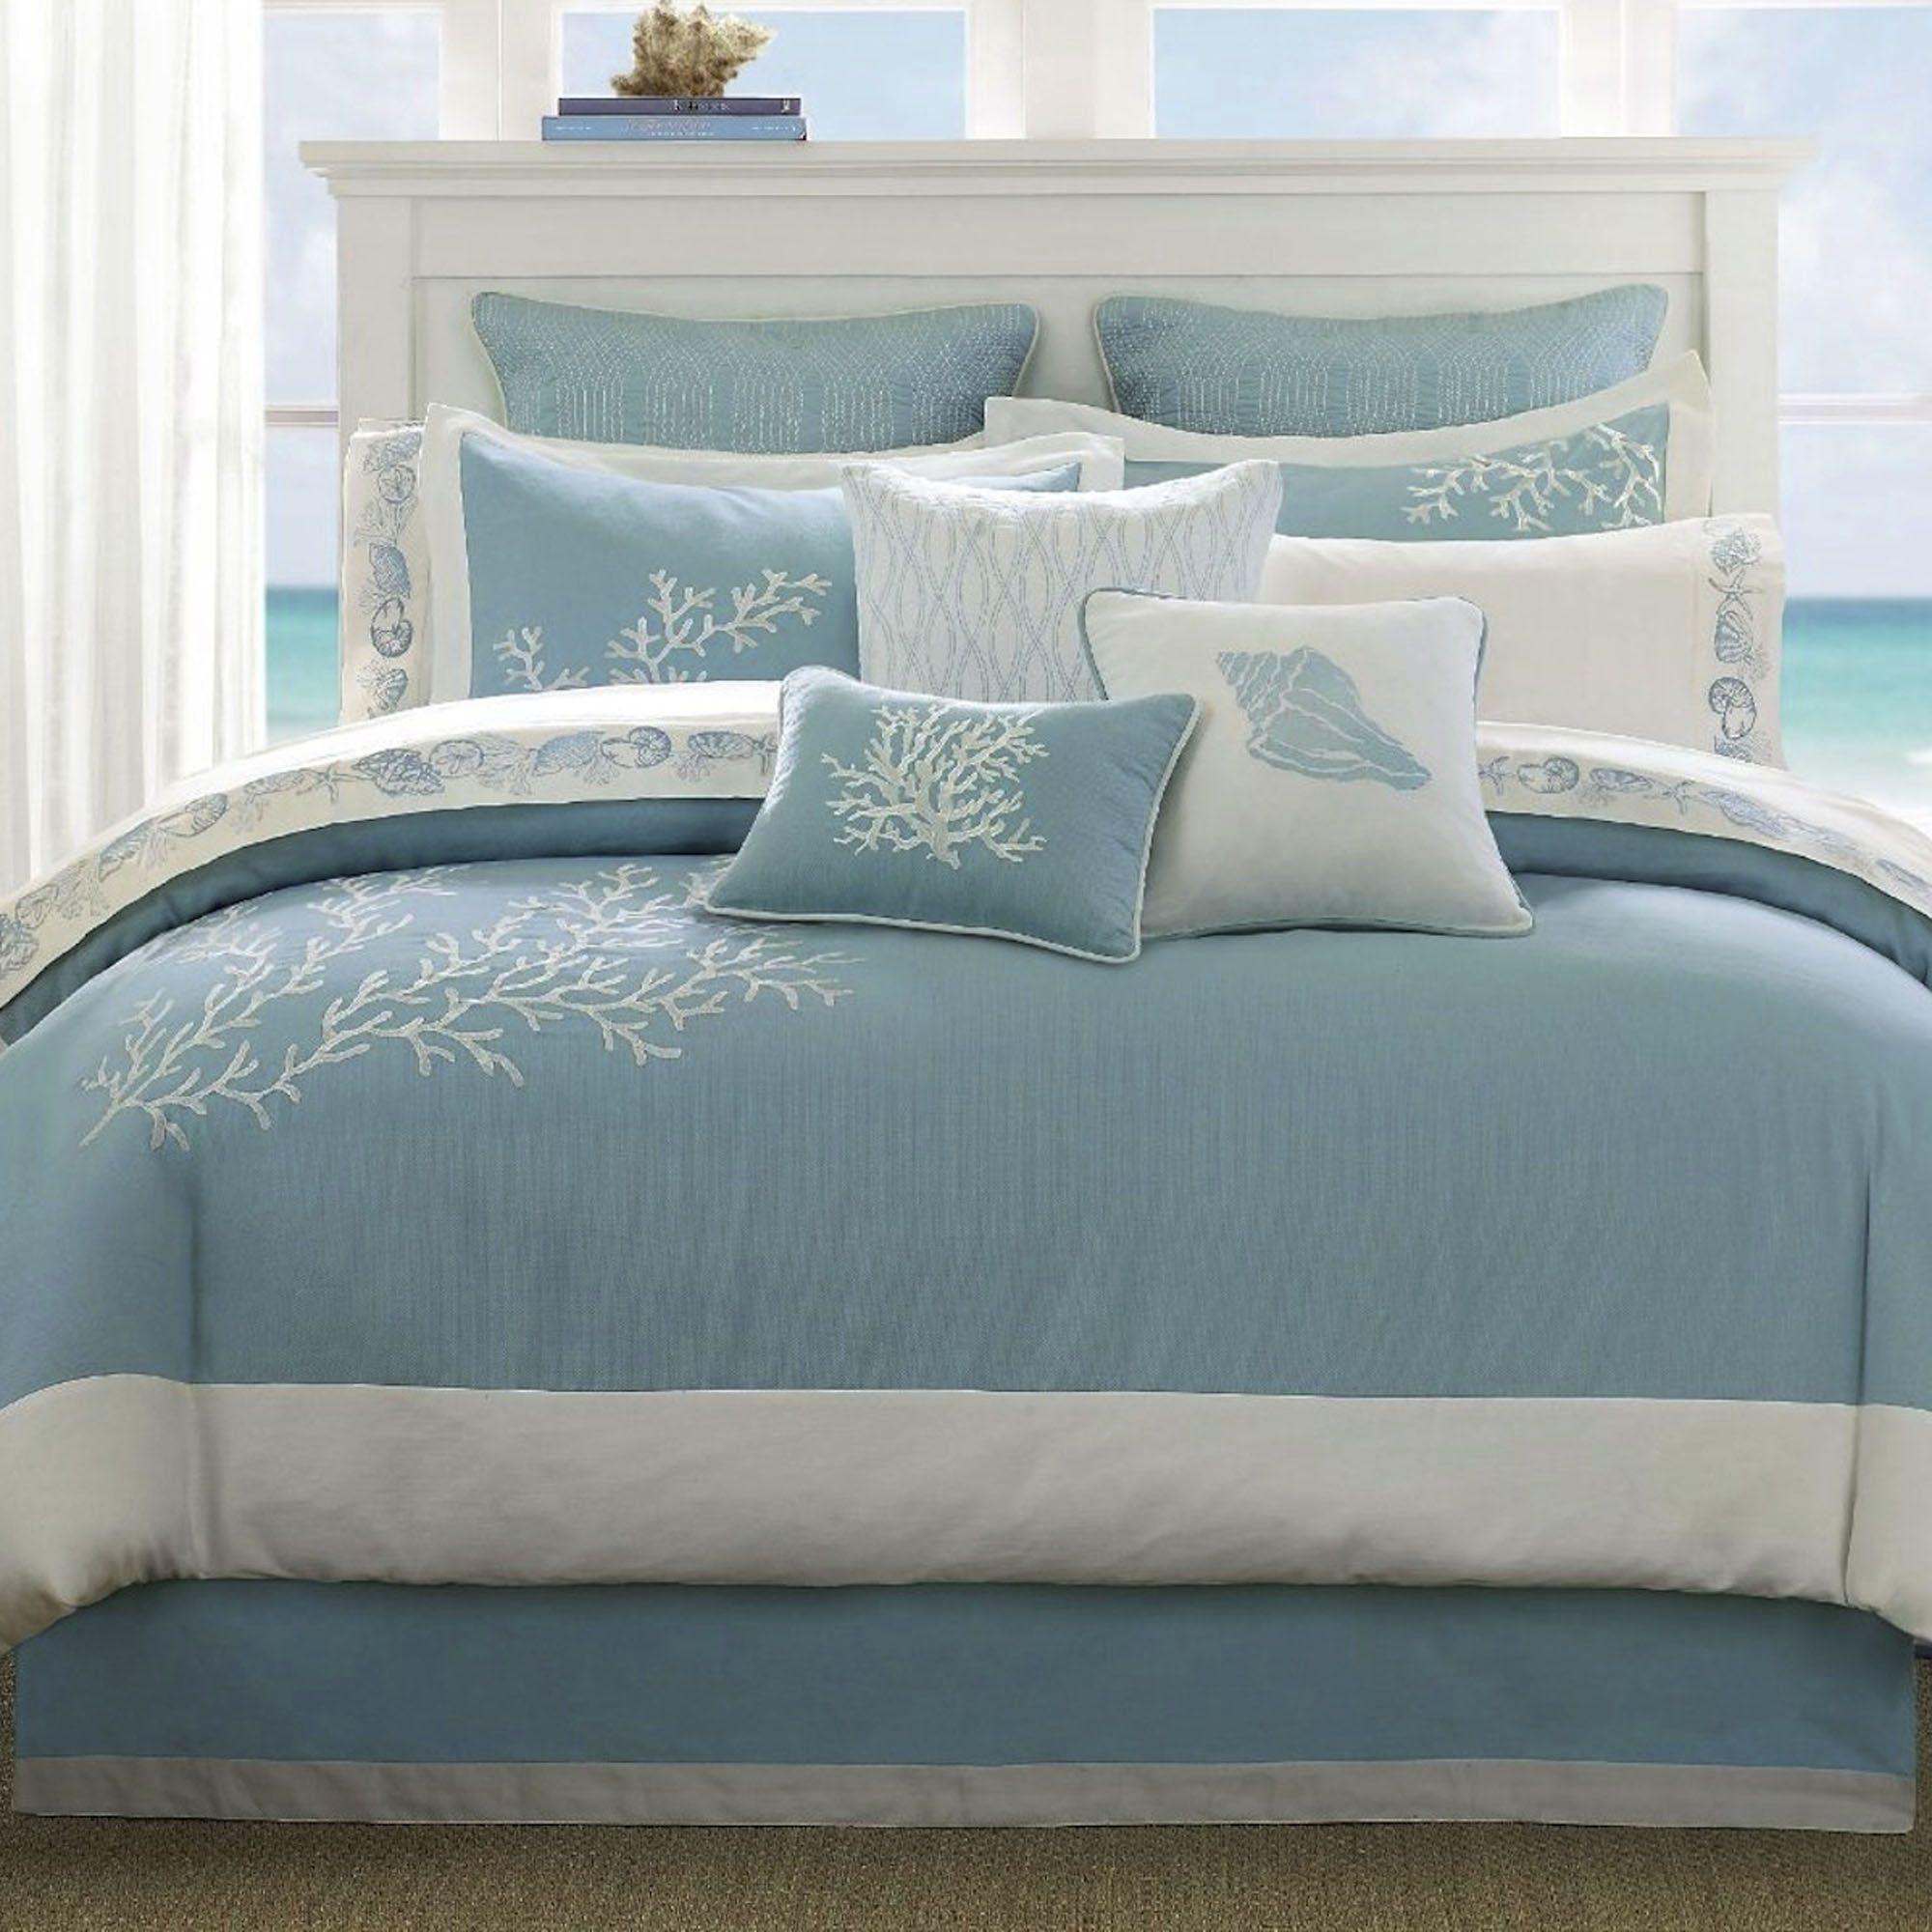 Coastline Embroidered Coral forter Bedding